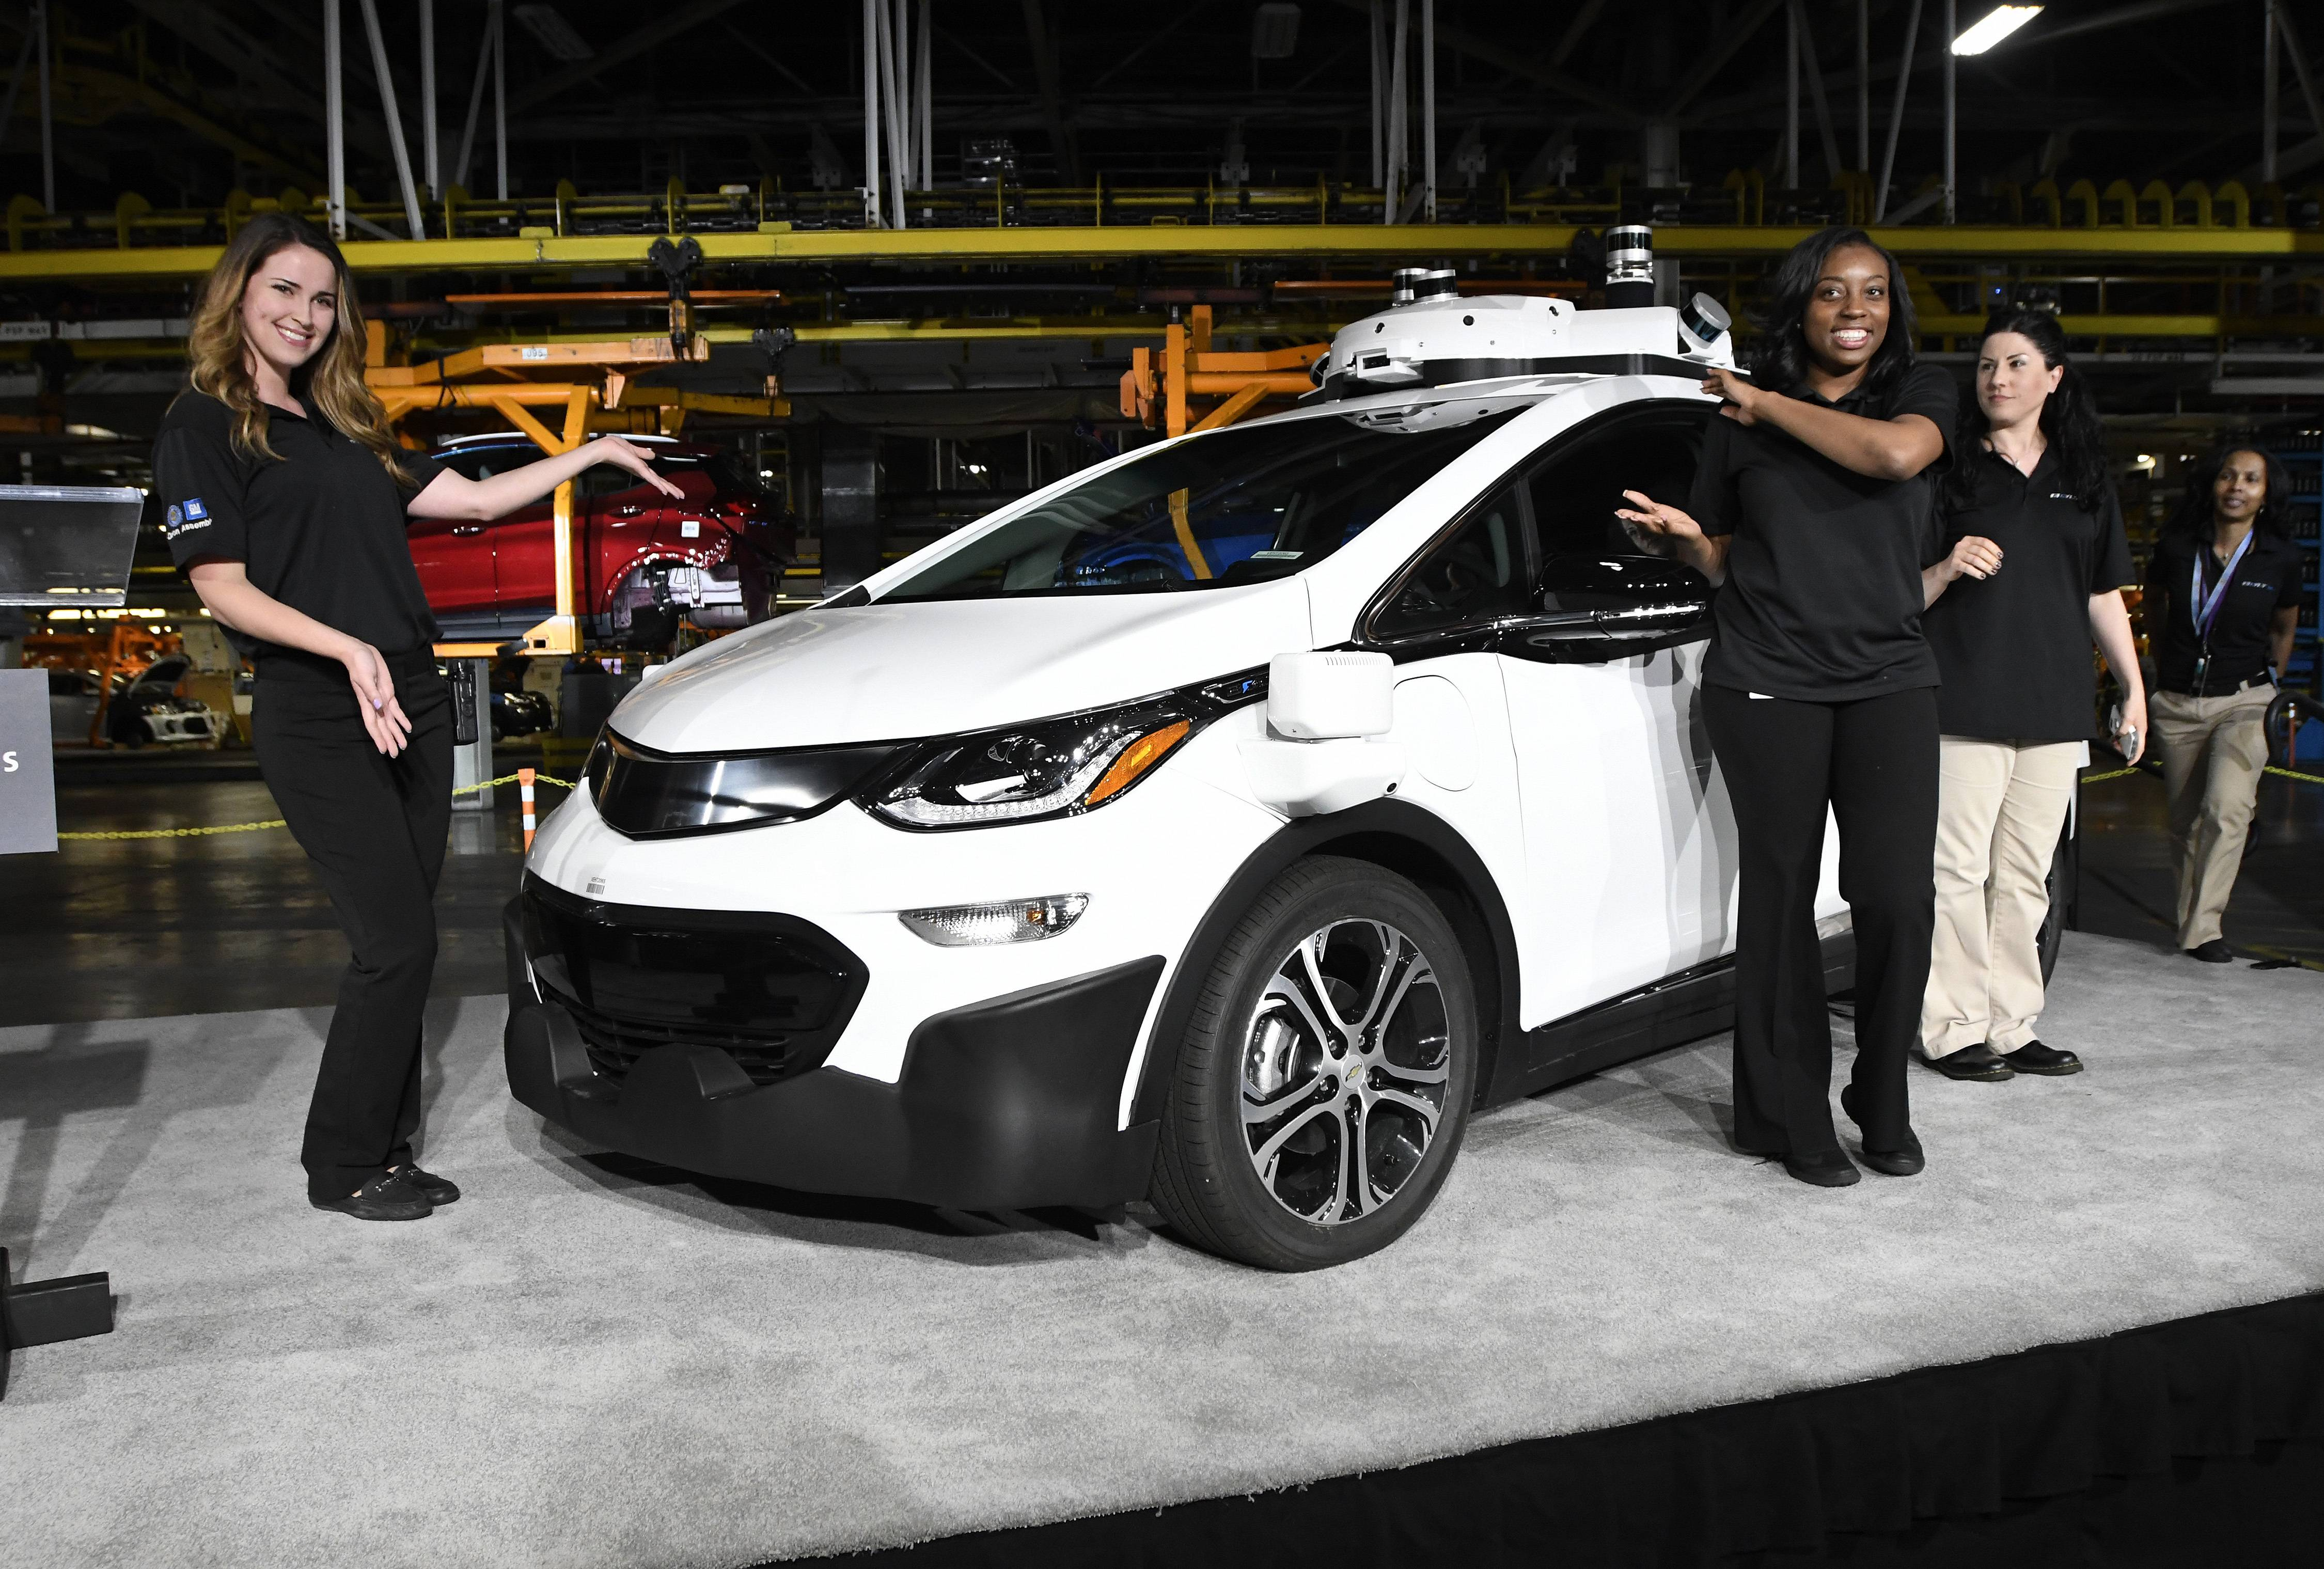 GM said Tuesday it was expanding its fleet of Bolt electric cars outfitted with self-driving gear to 180 vehicles from the 50 cars already being tested in San Francisco, metro Detroit and Scottsdale, Arizona.